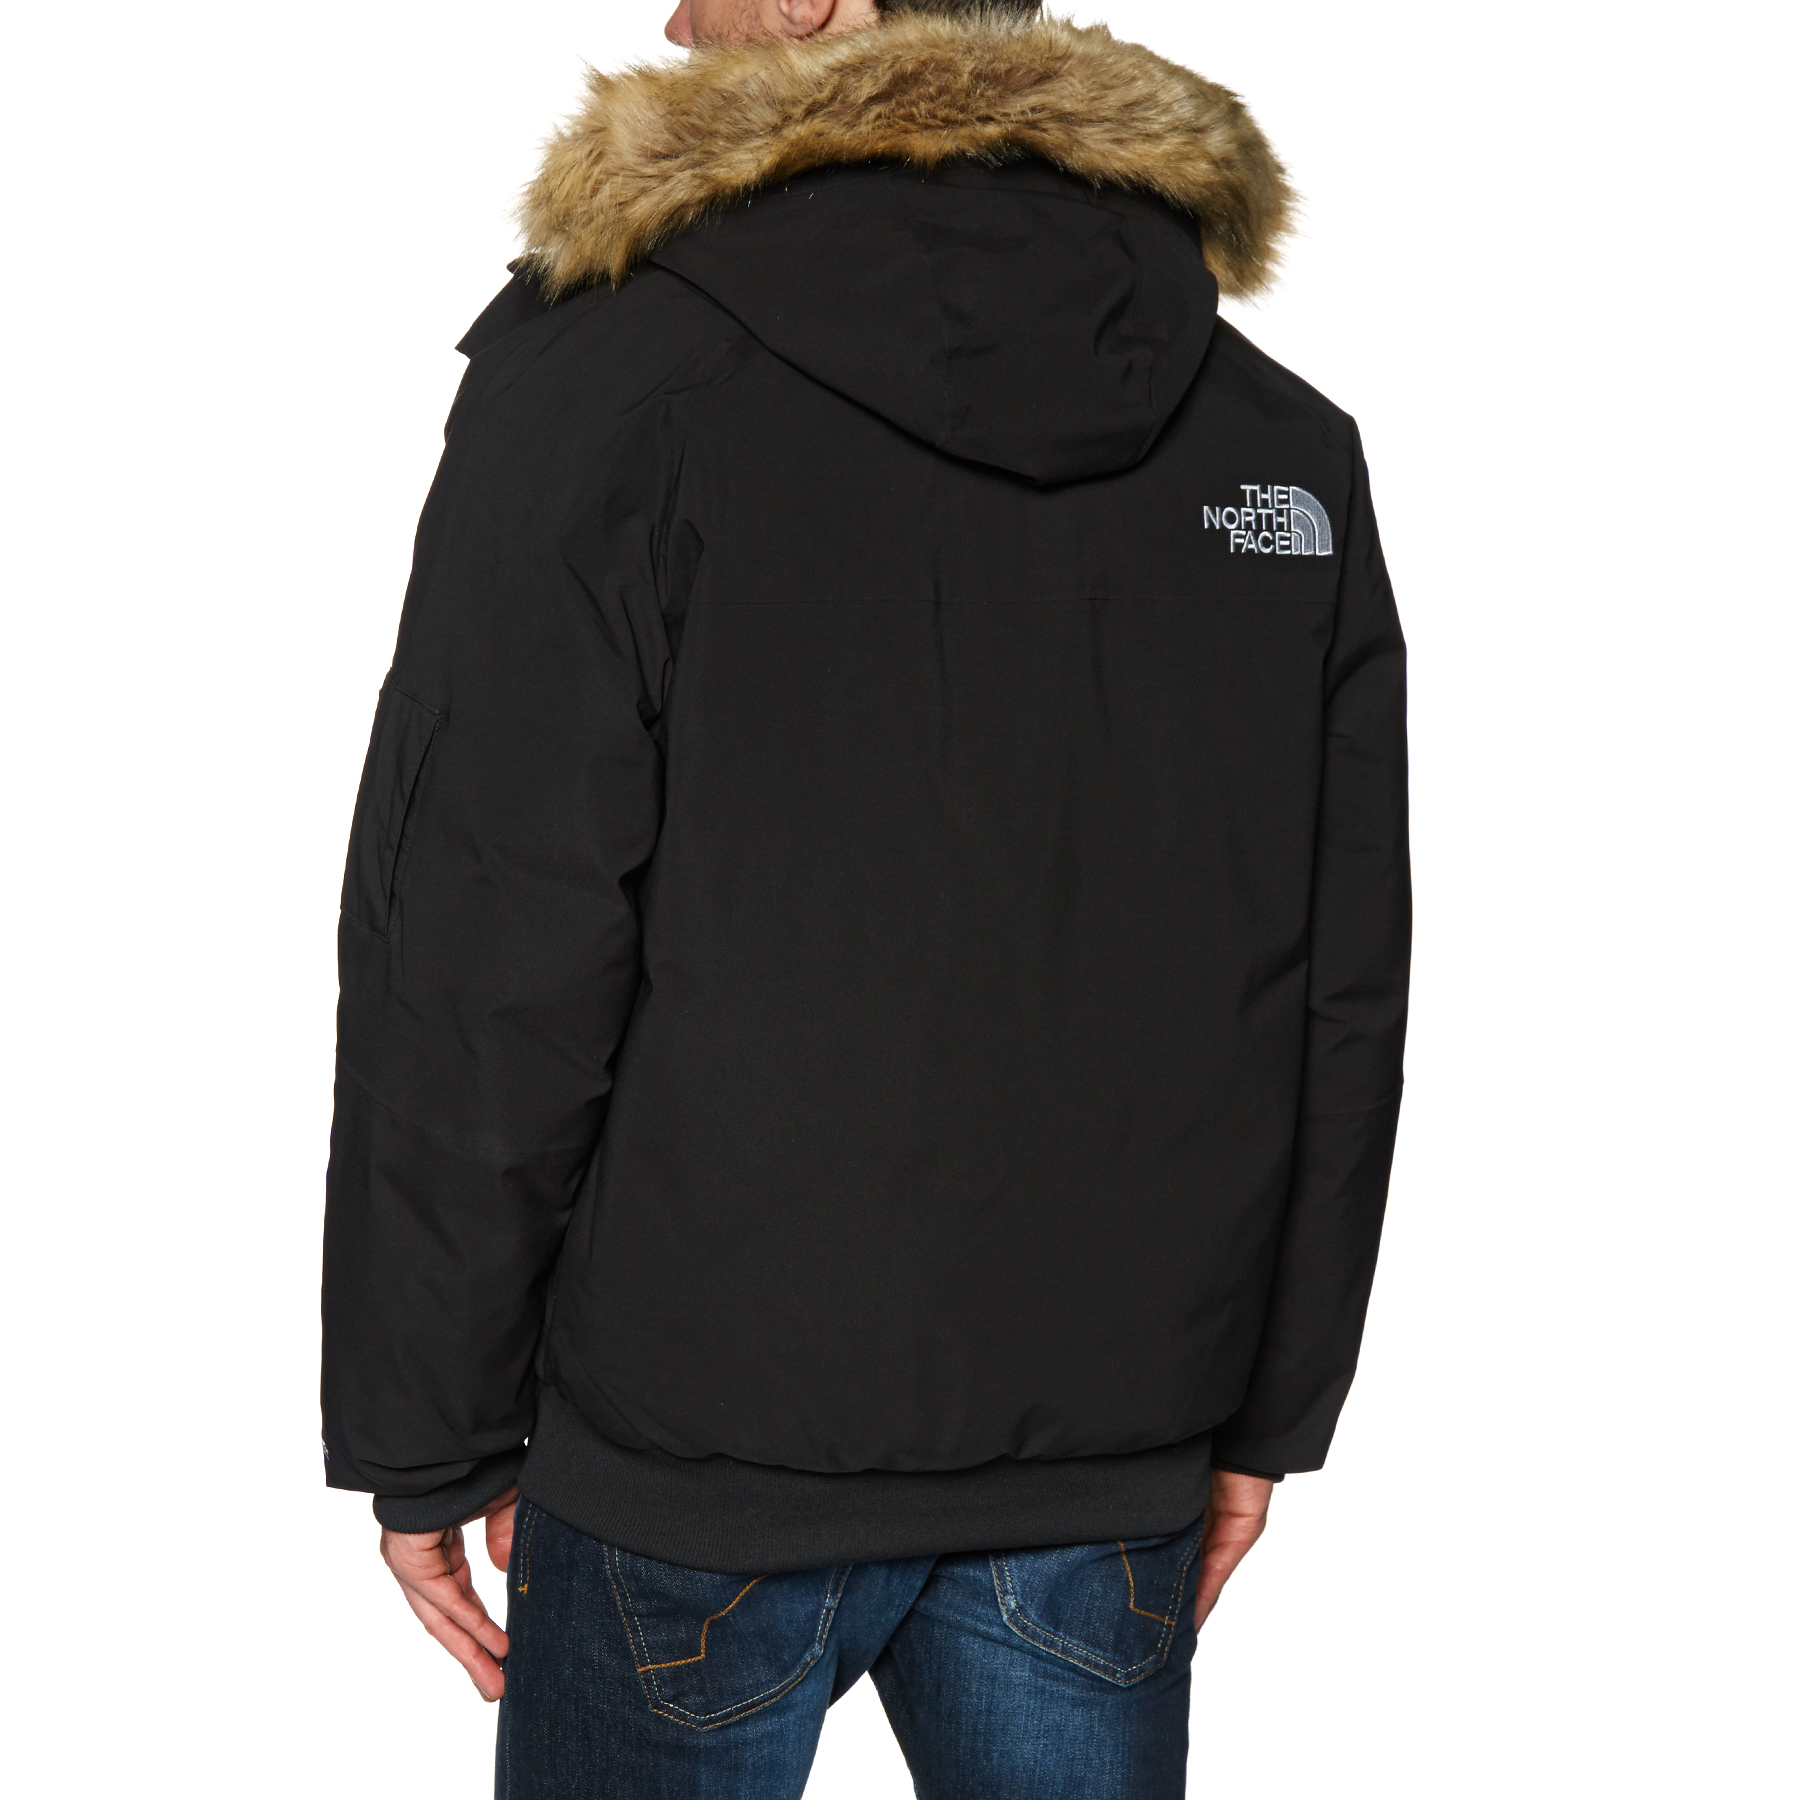 North Face Gotham GTX Daunenjacke Free Delivery options on